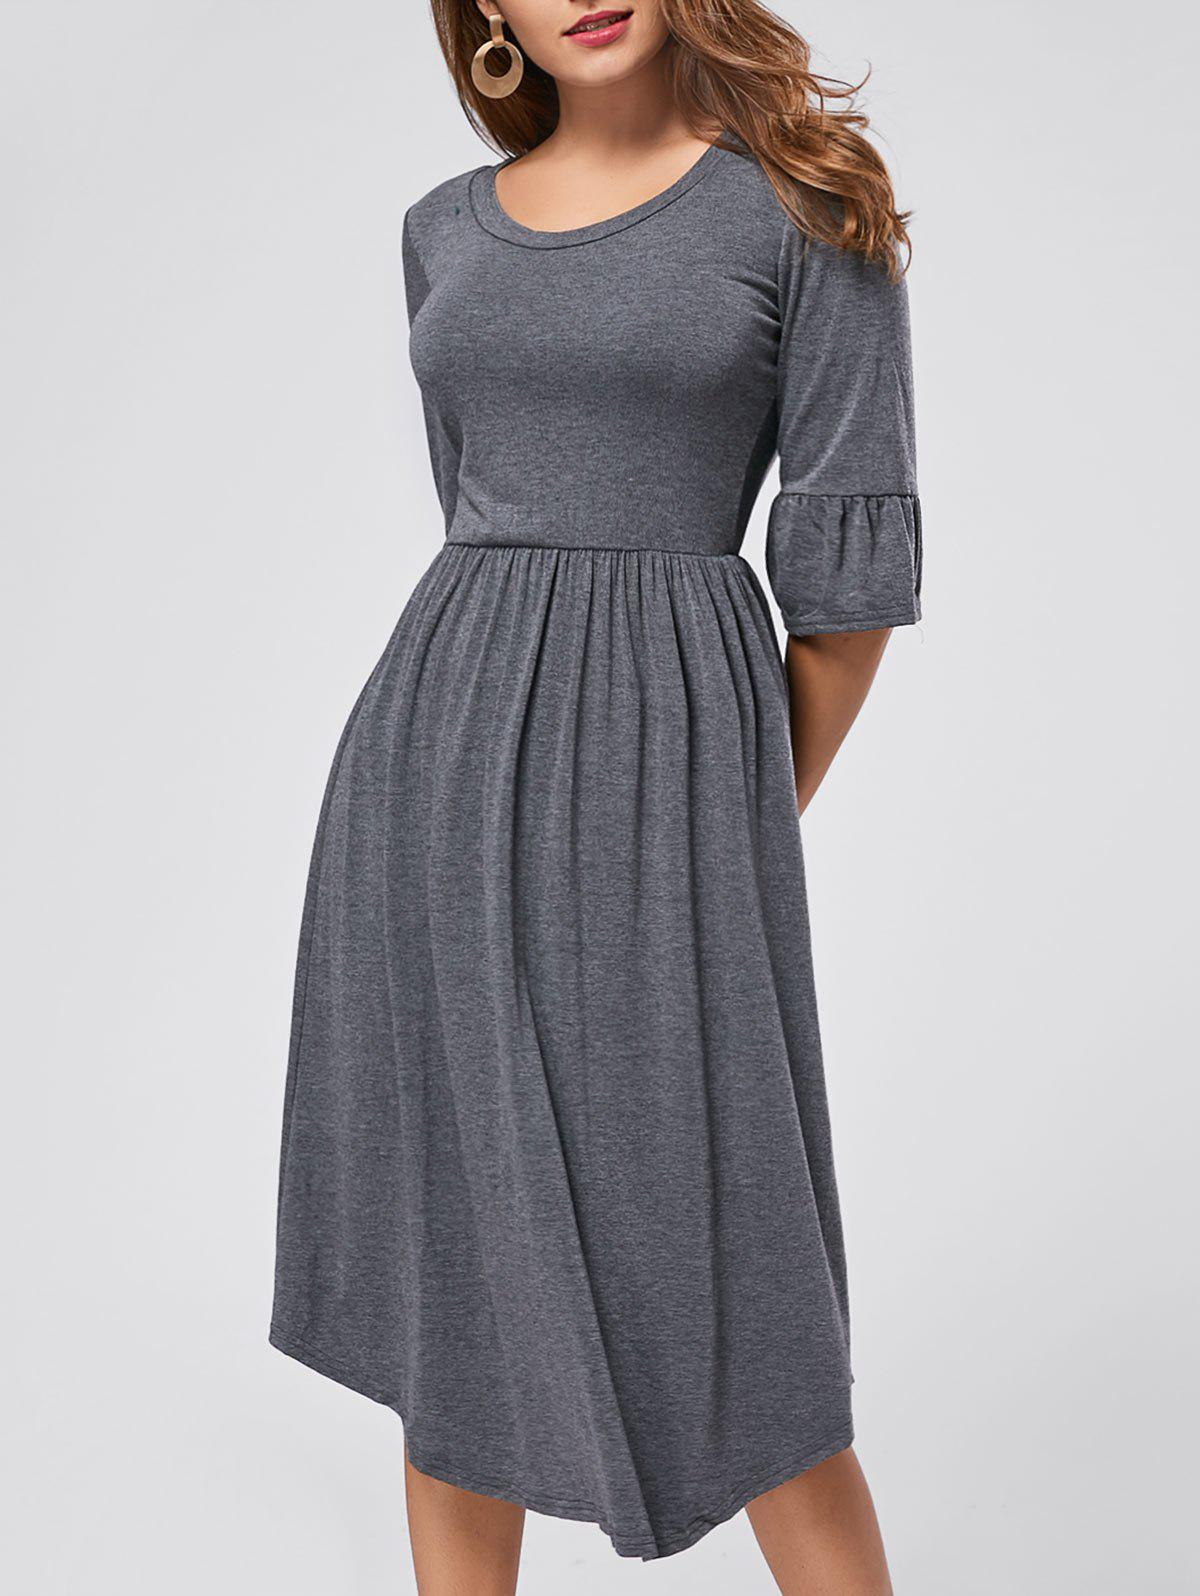 Ruffle Sleeve Midi Jersey Dress - GRAY S